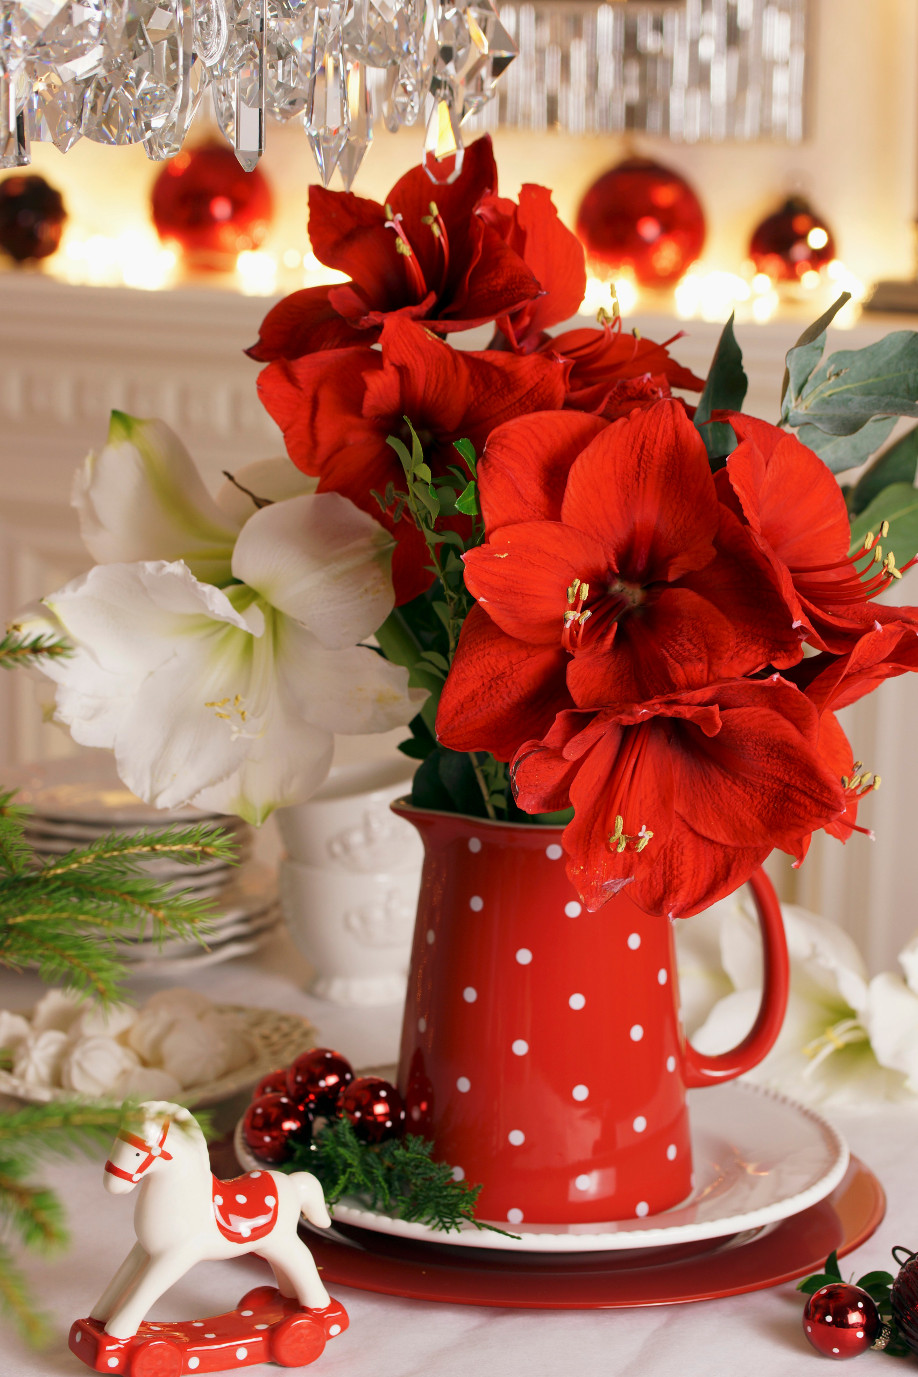 Winter amaryllis flowers in red vase